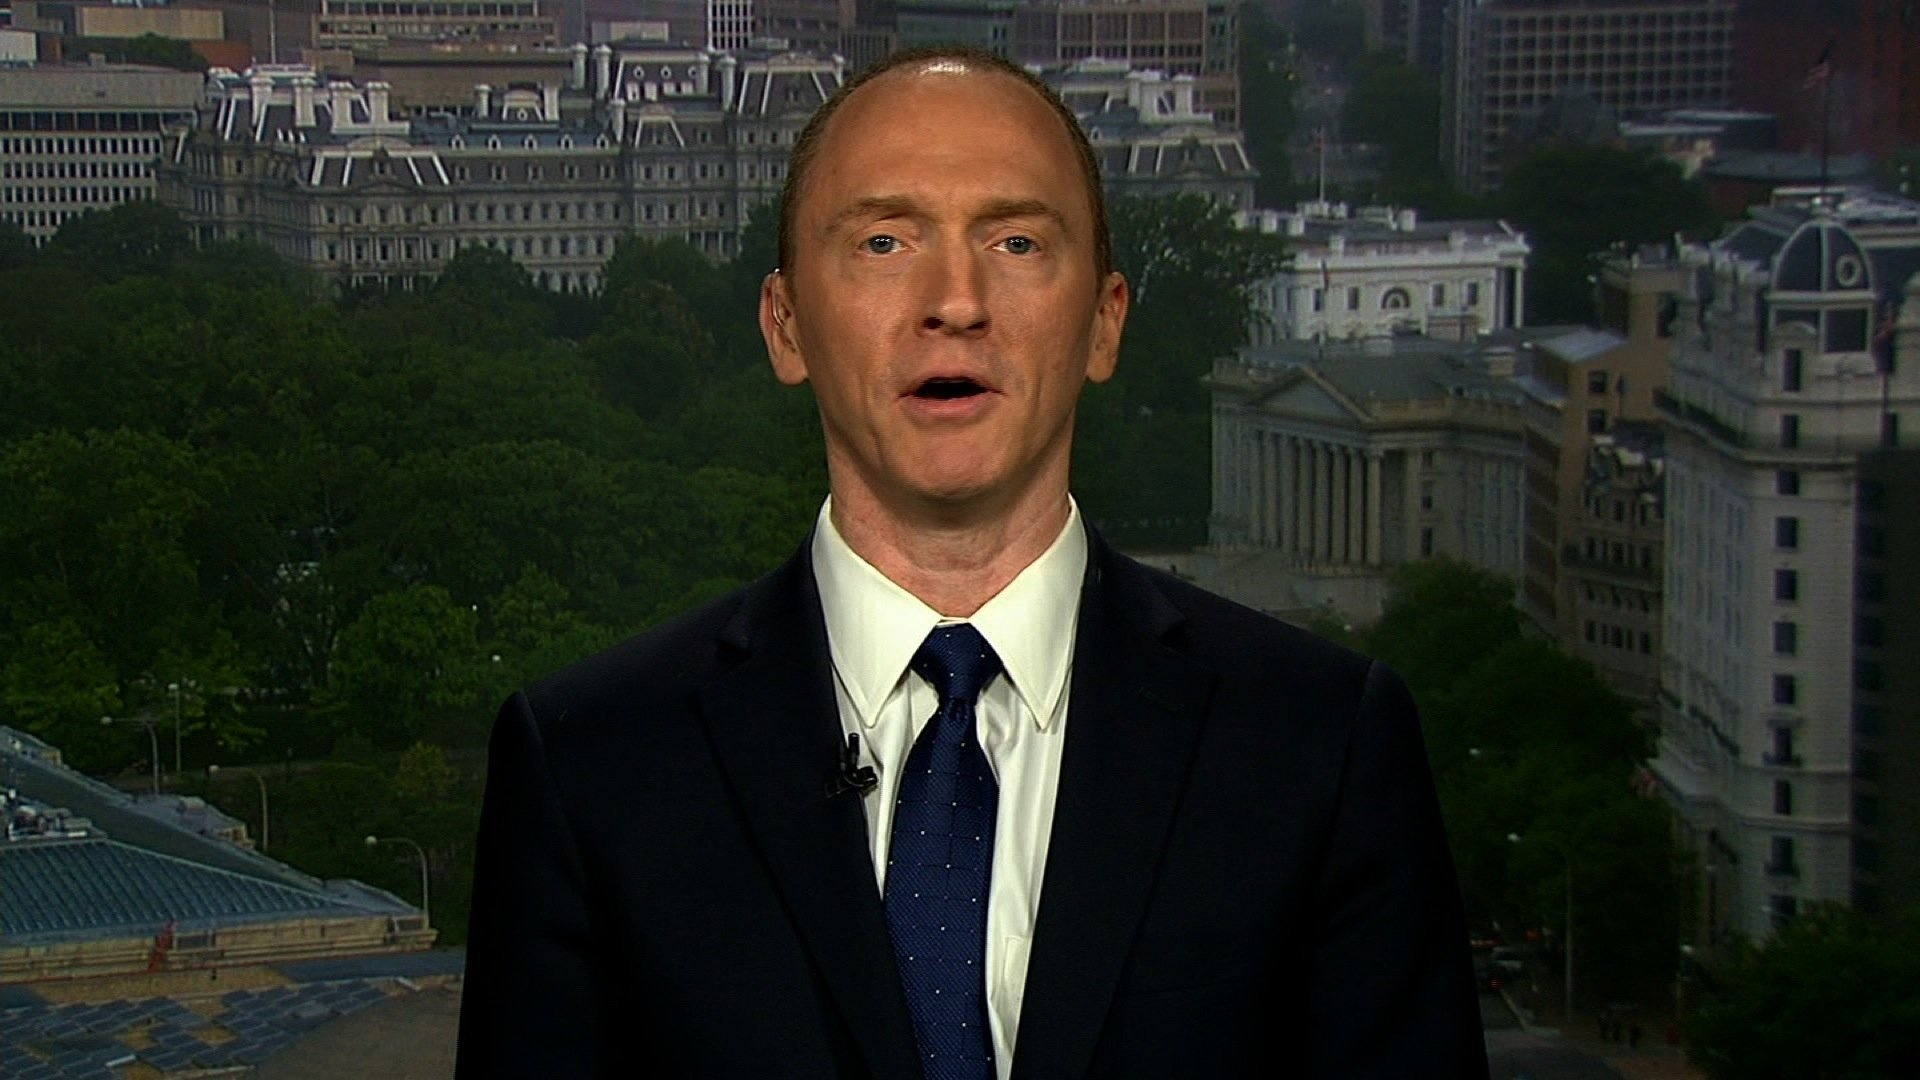 Carter Page subpoenaed by Senate intel committee